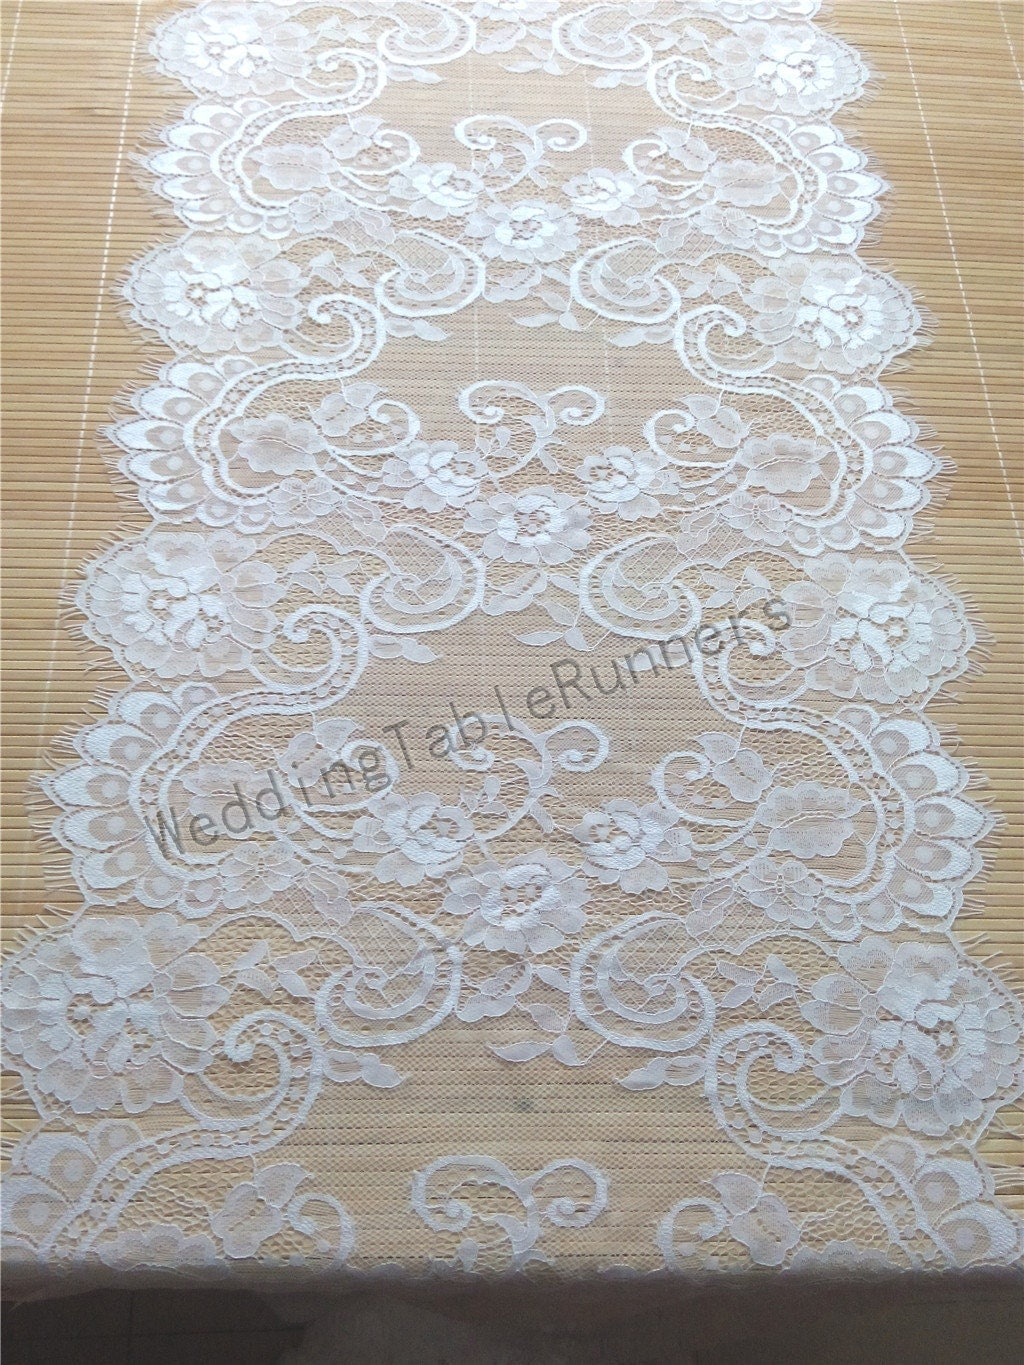 10ft lace table runner 17 wedding table by weddingtablerunners